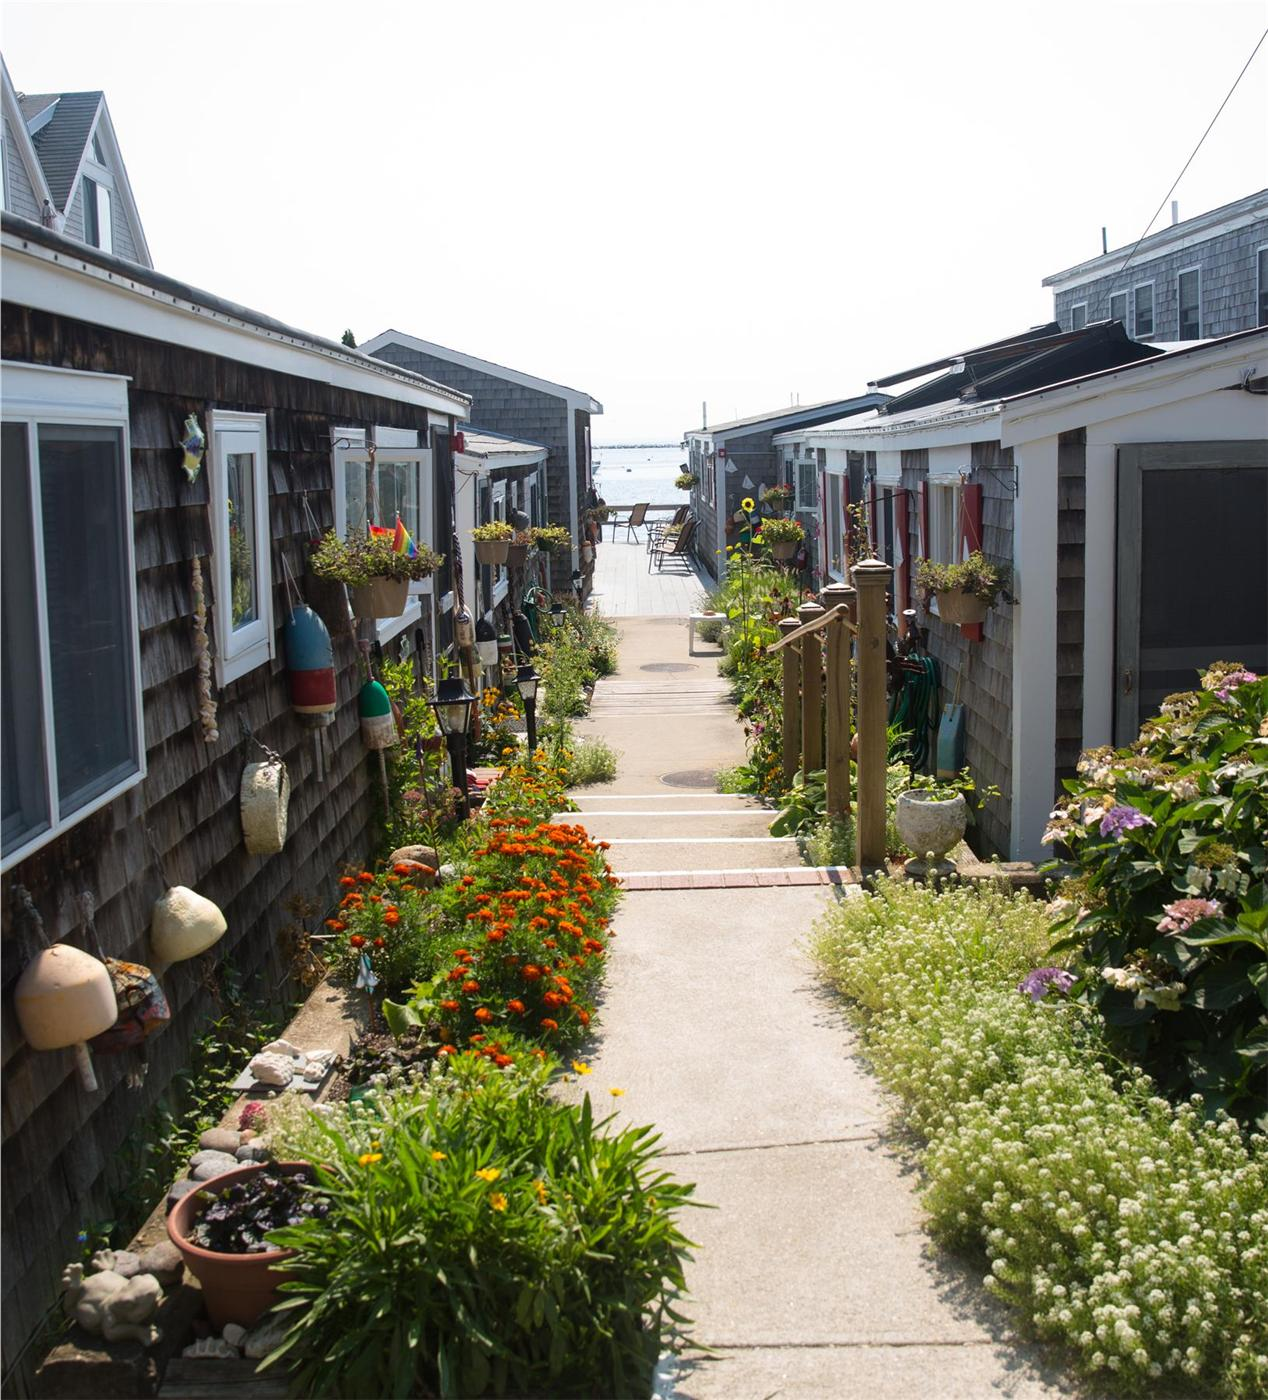 gabriels vacation in ma provincetown hotel rentals friendly slideshow patrick cottages michael rooms pet condo